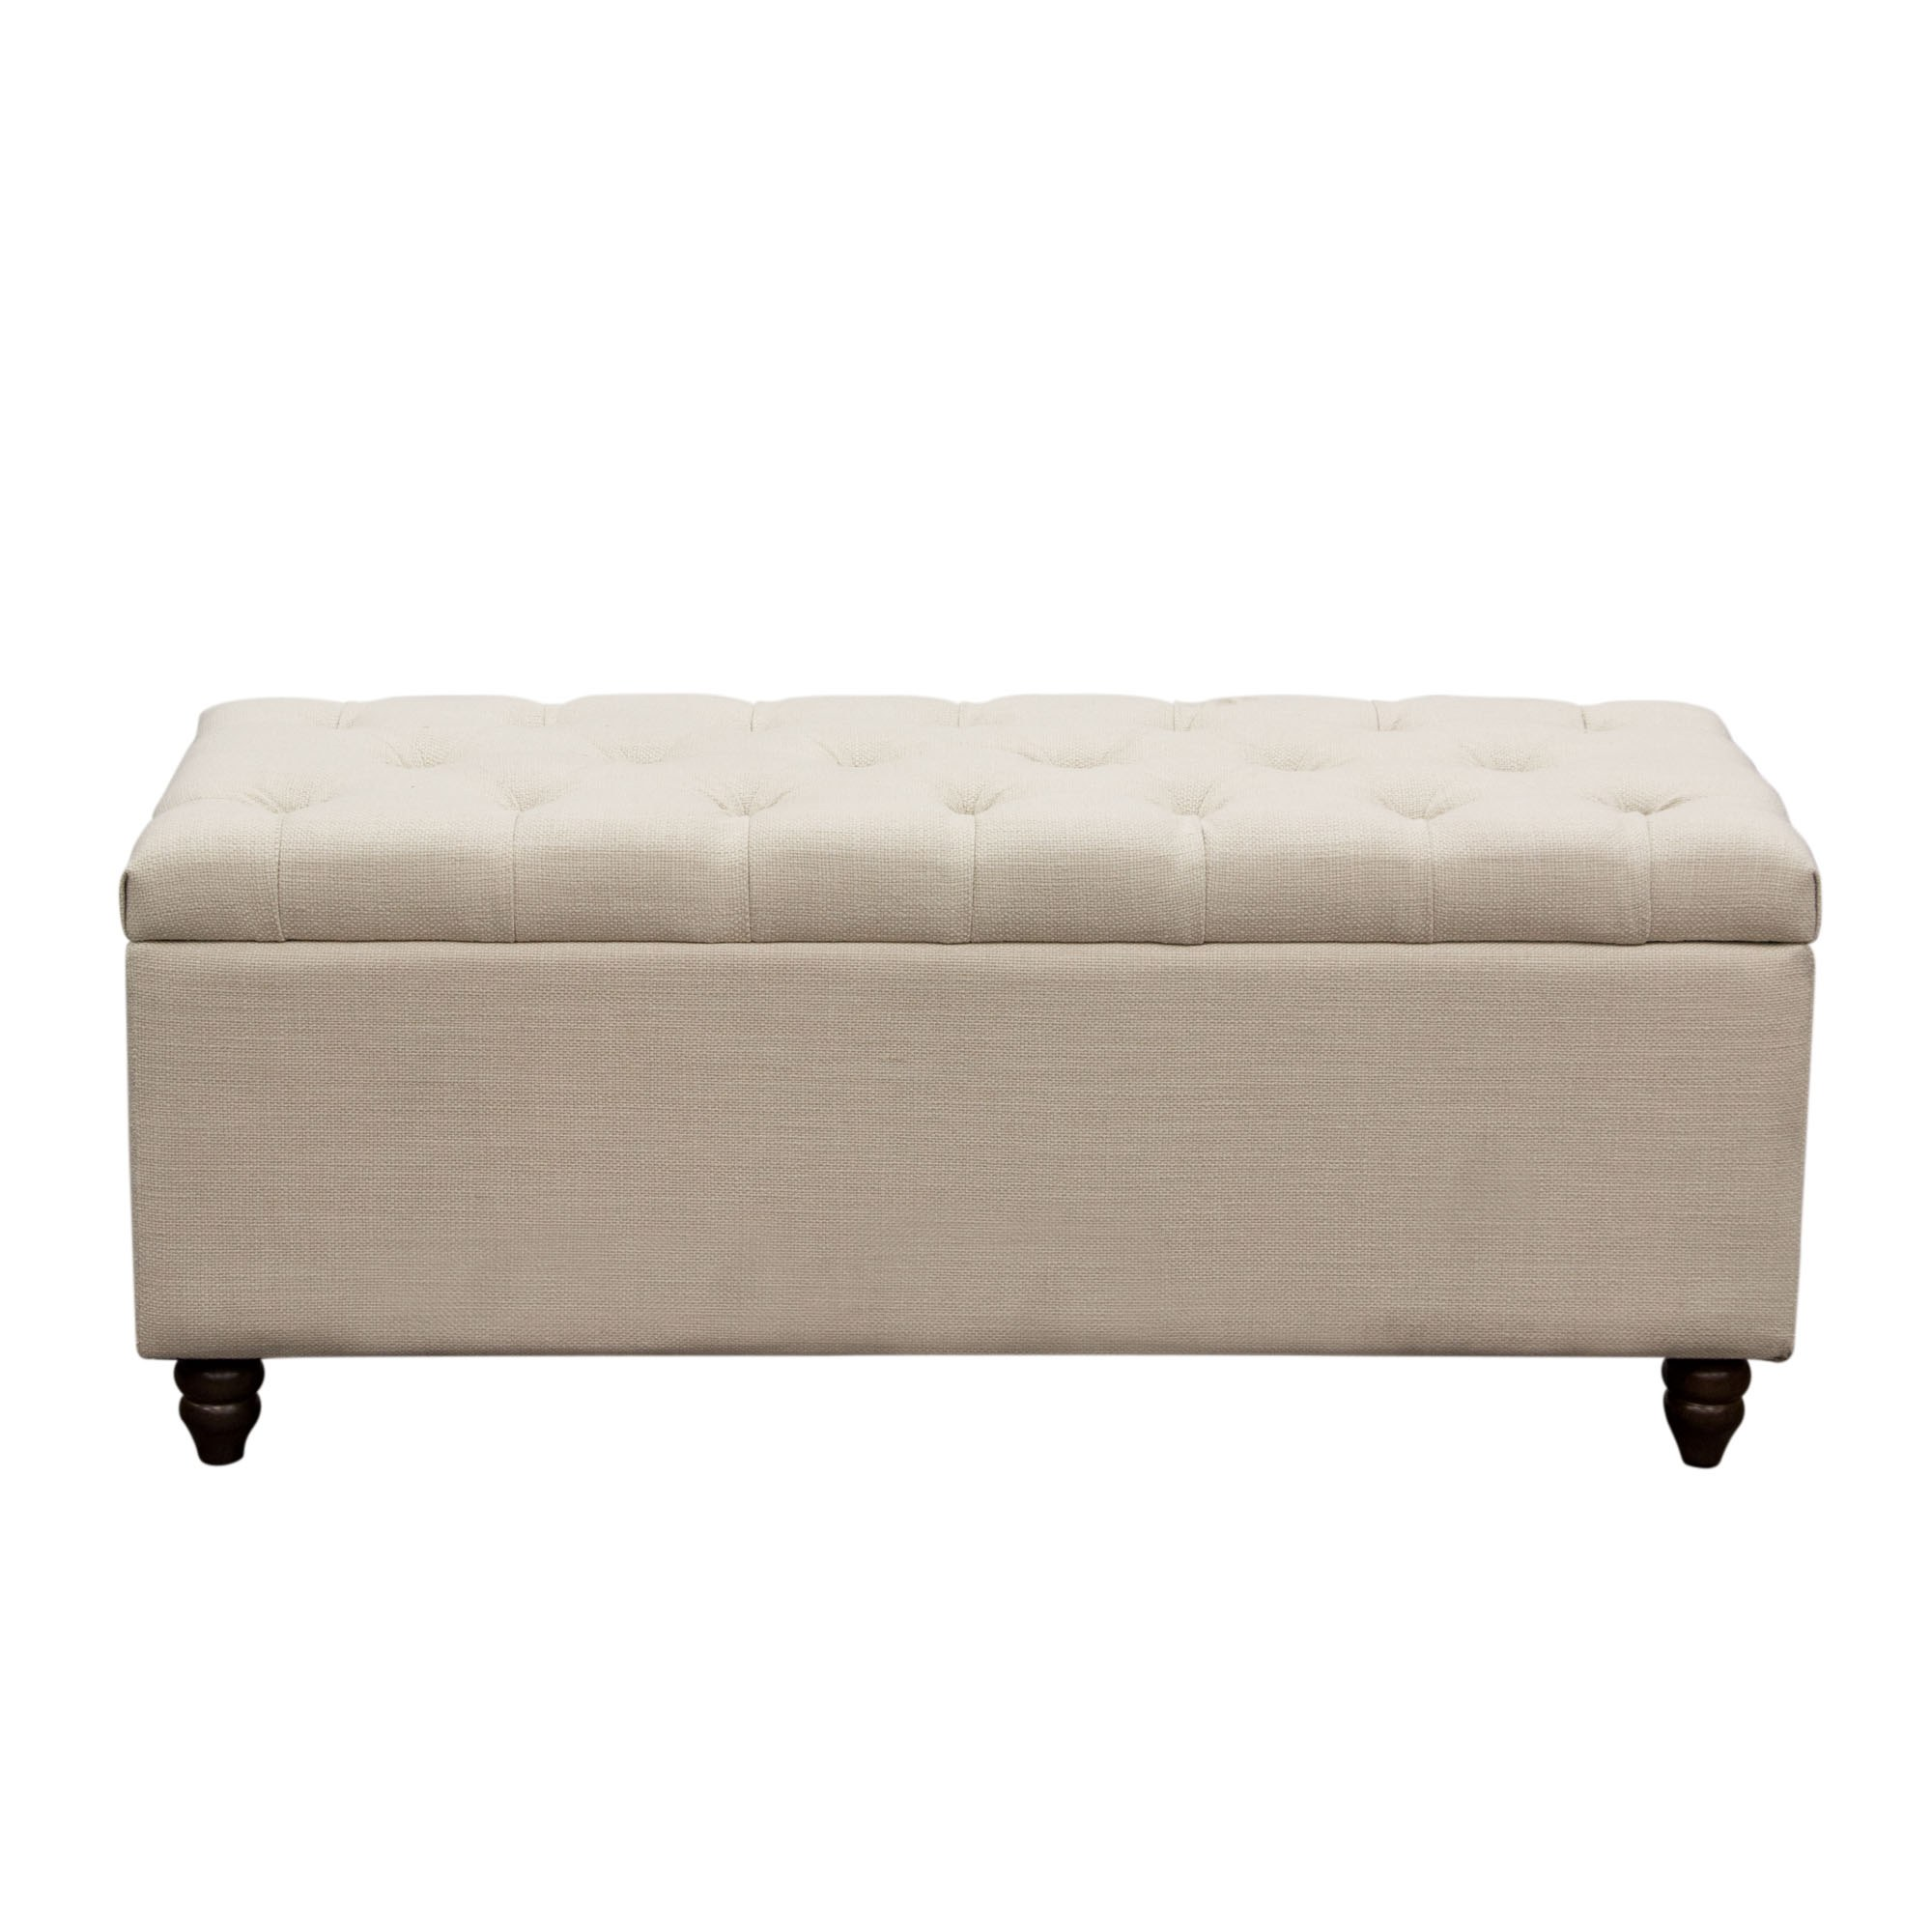 by tufted velvet grey dusk crawford mn sofa crawfordsodg diamond for